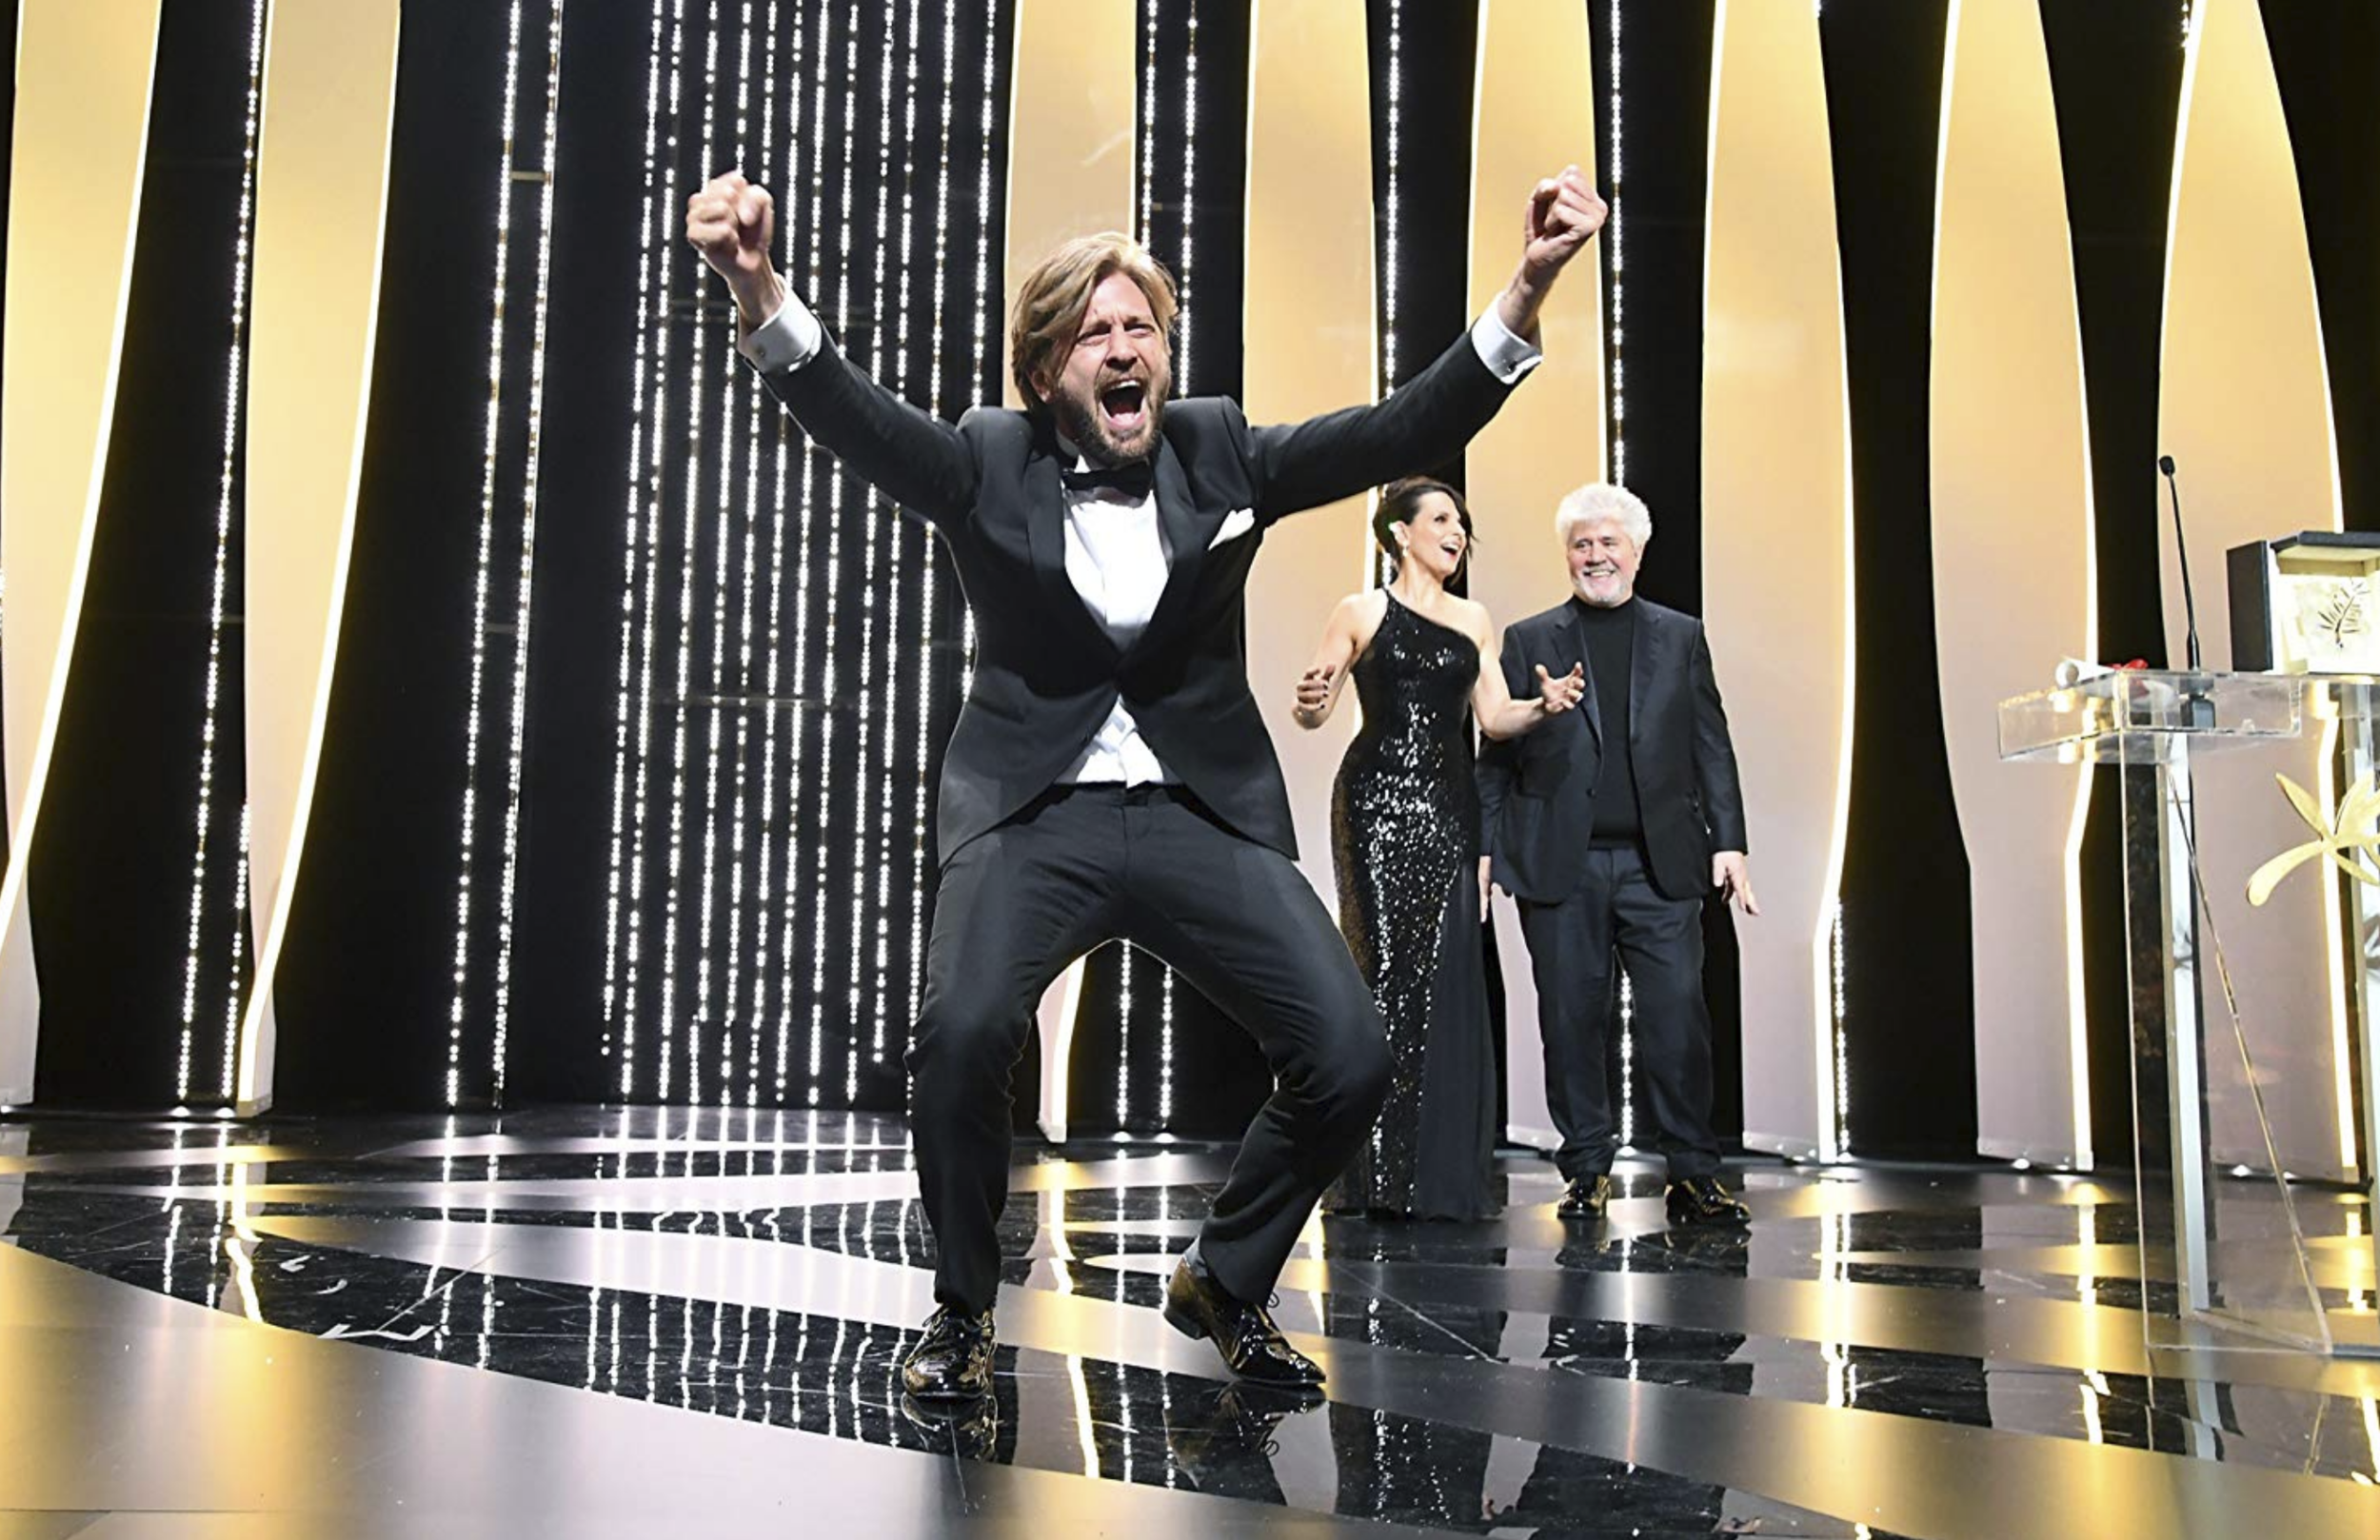 Ruben Östlund wins the Palme d'Or in 2017 for  The Square  - courtesy of the Festival de Cannes